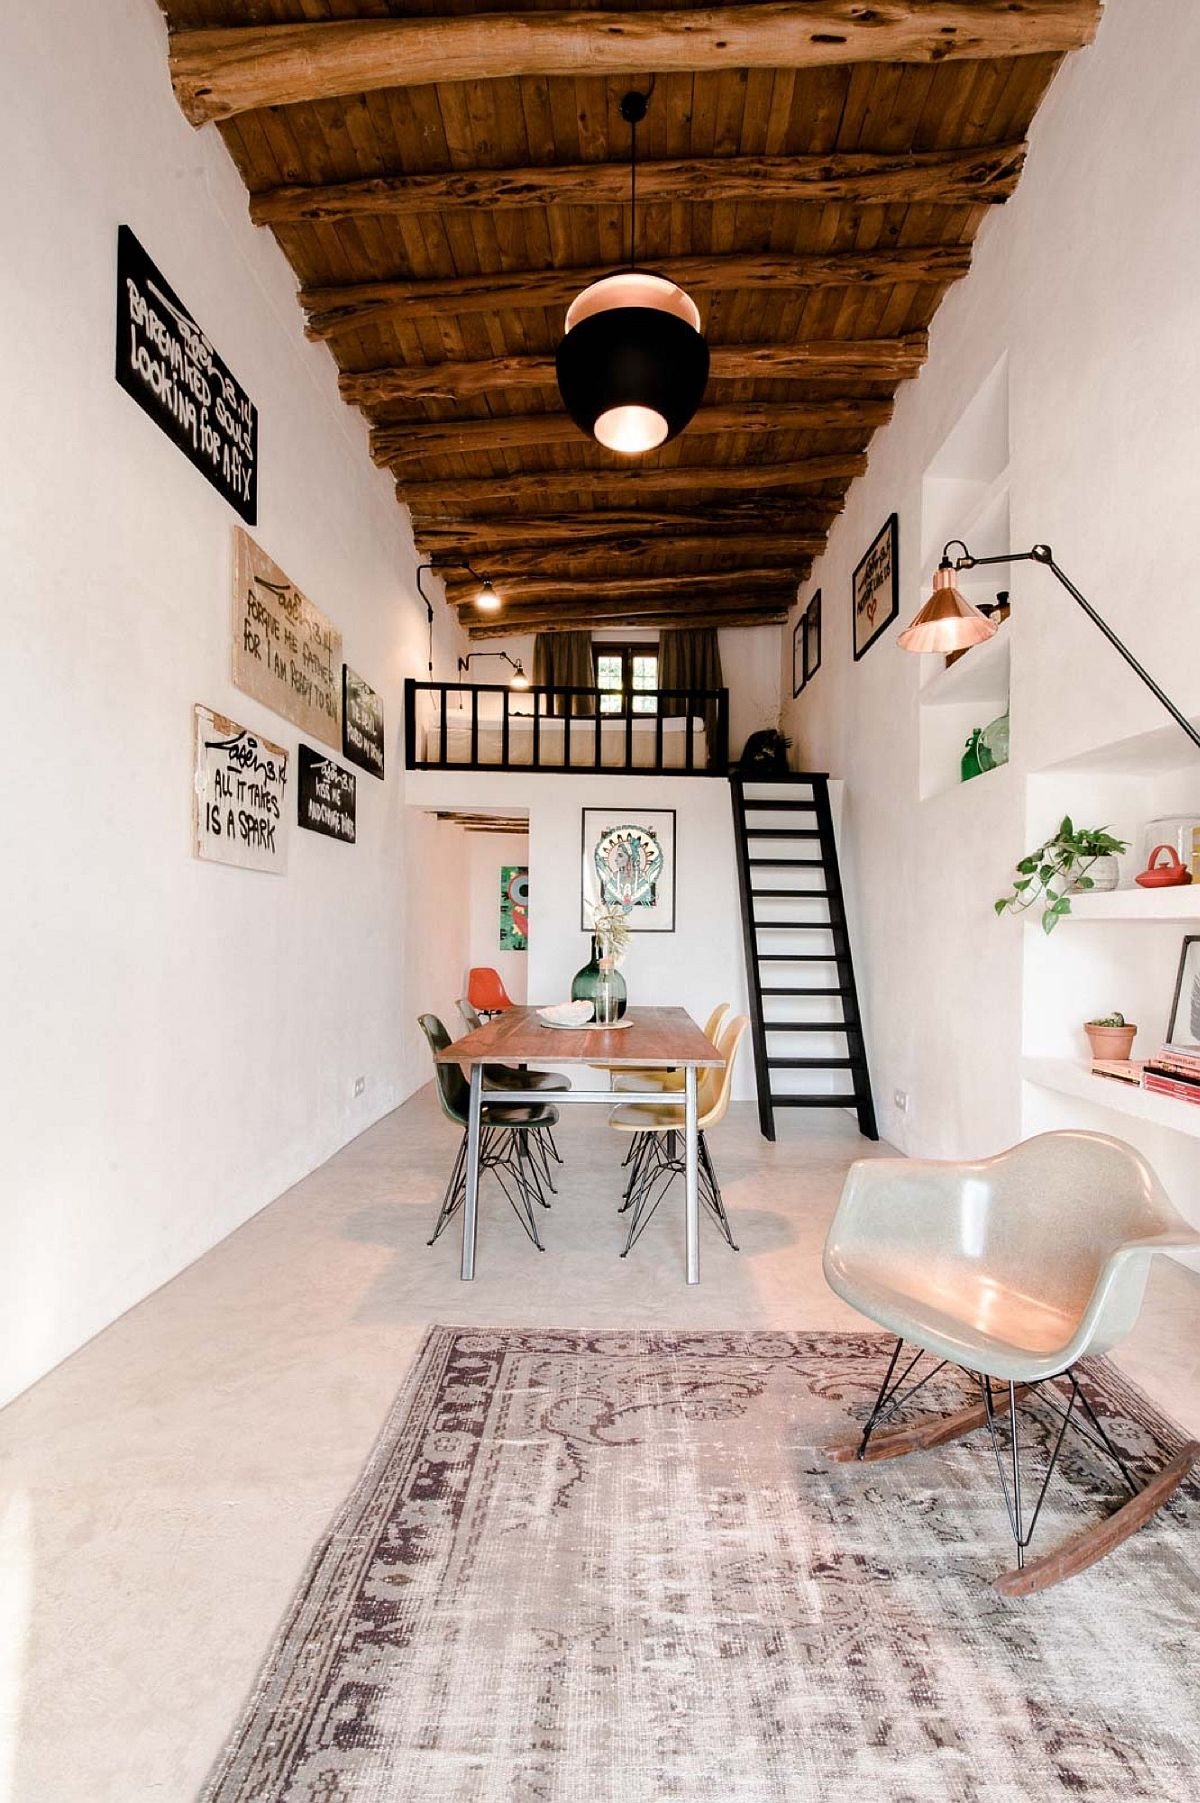 Living room of the Ibiza guesthouse combines the old and the new